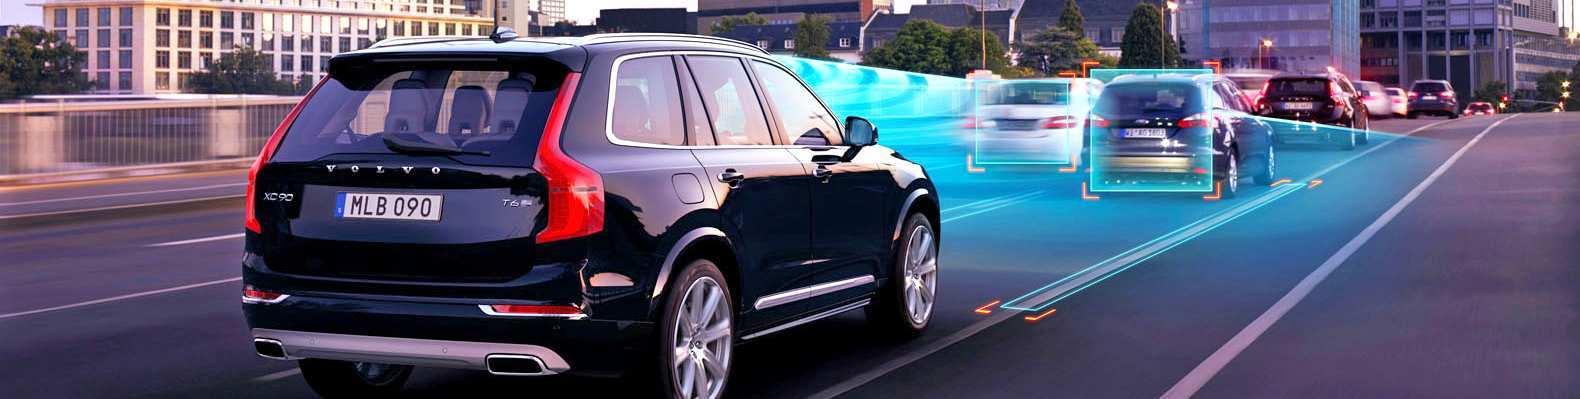 38 Gallery of Volvo Crash Proof Car 2020 Overview with Volvo Crash Proof Car 2020